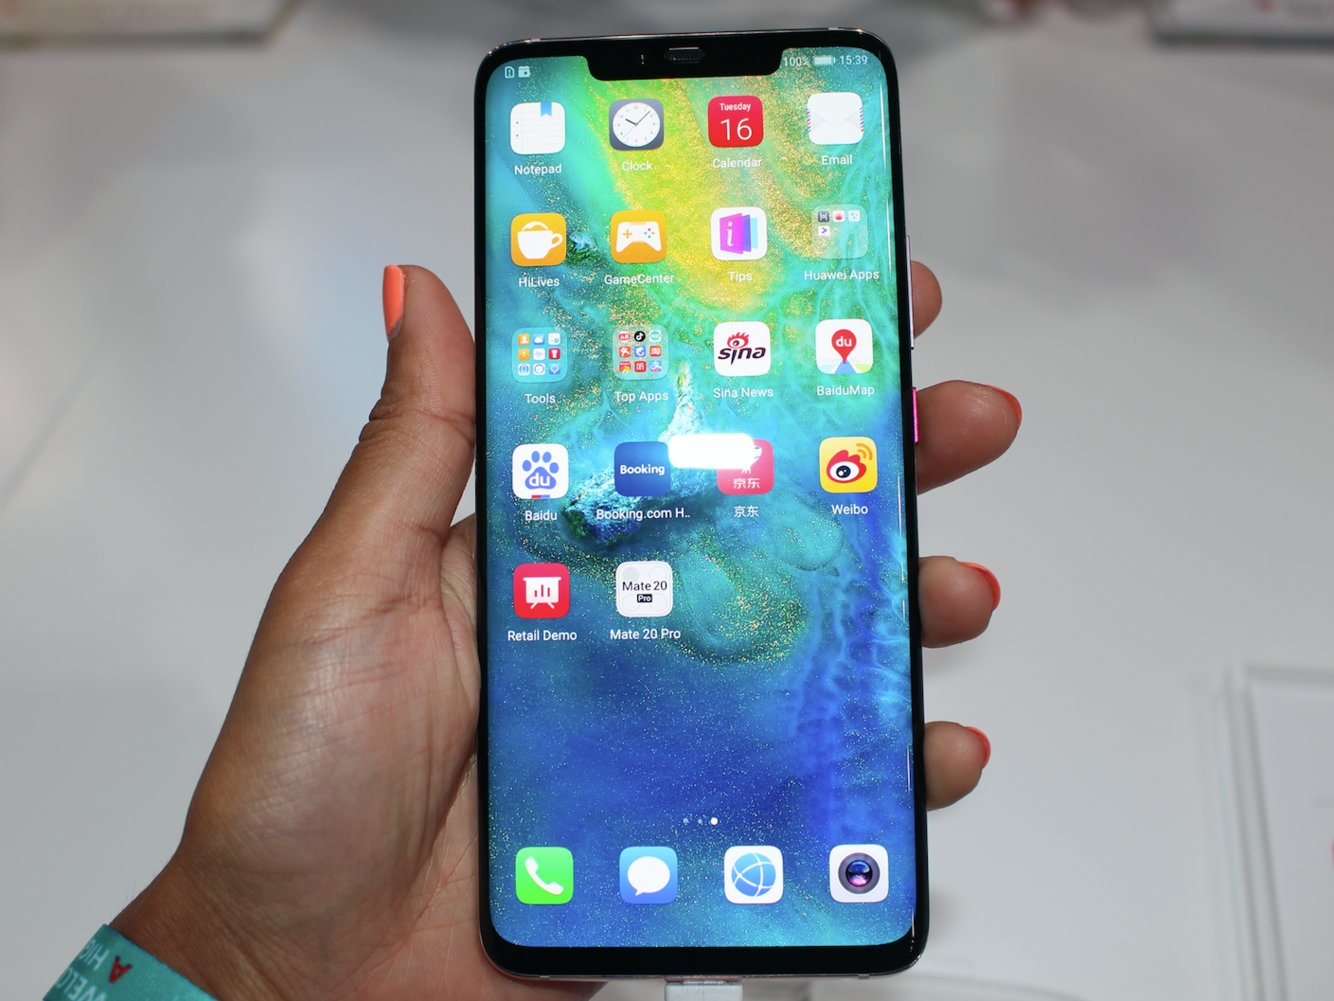 Justice Dept Delivers Appellate Argument To Unwind Att Time Warner Mediatech Headset Ep 07 The Android Phone Maker Thats More Popular Than Apple Isnt Selling Its New Iphone Rival In Us